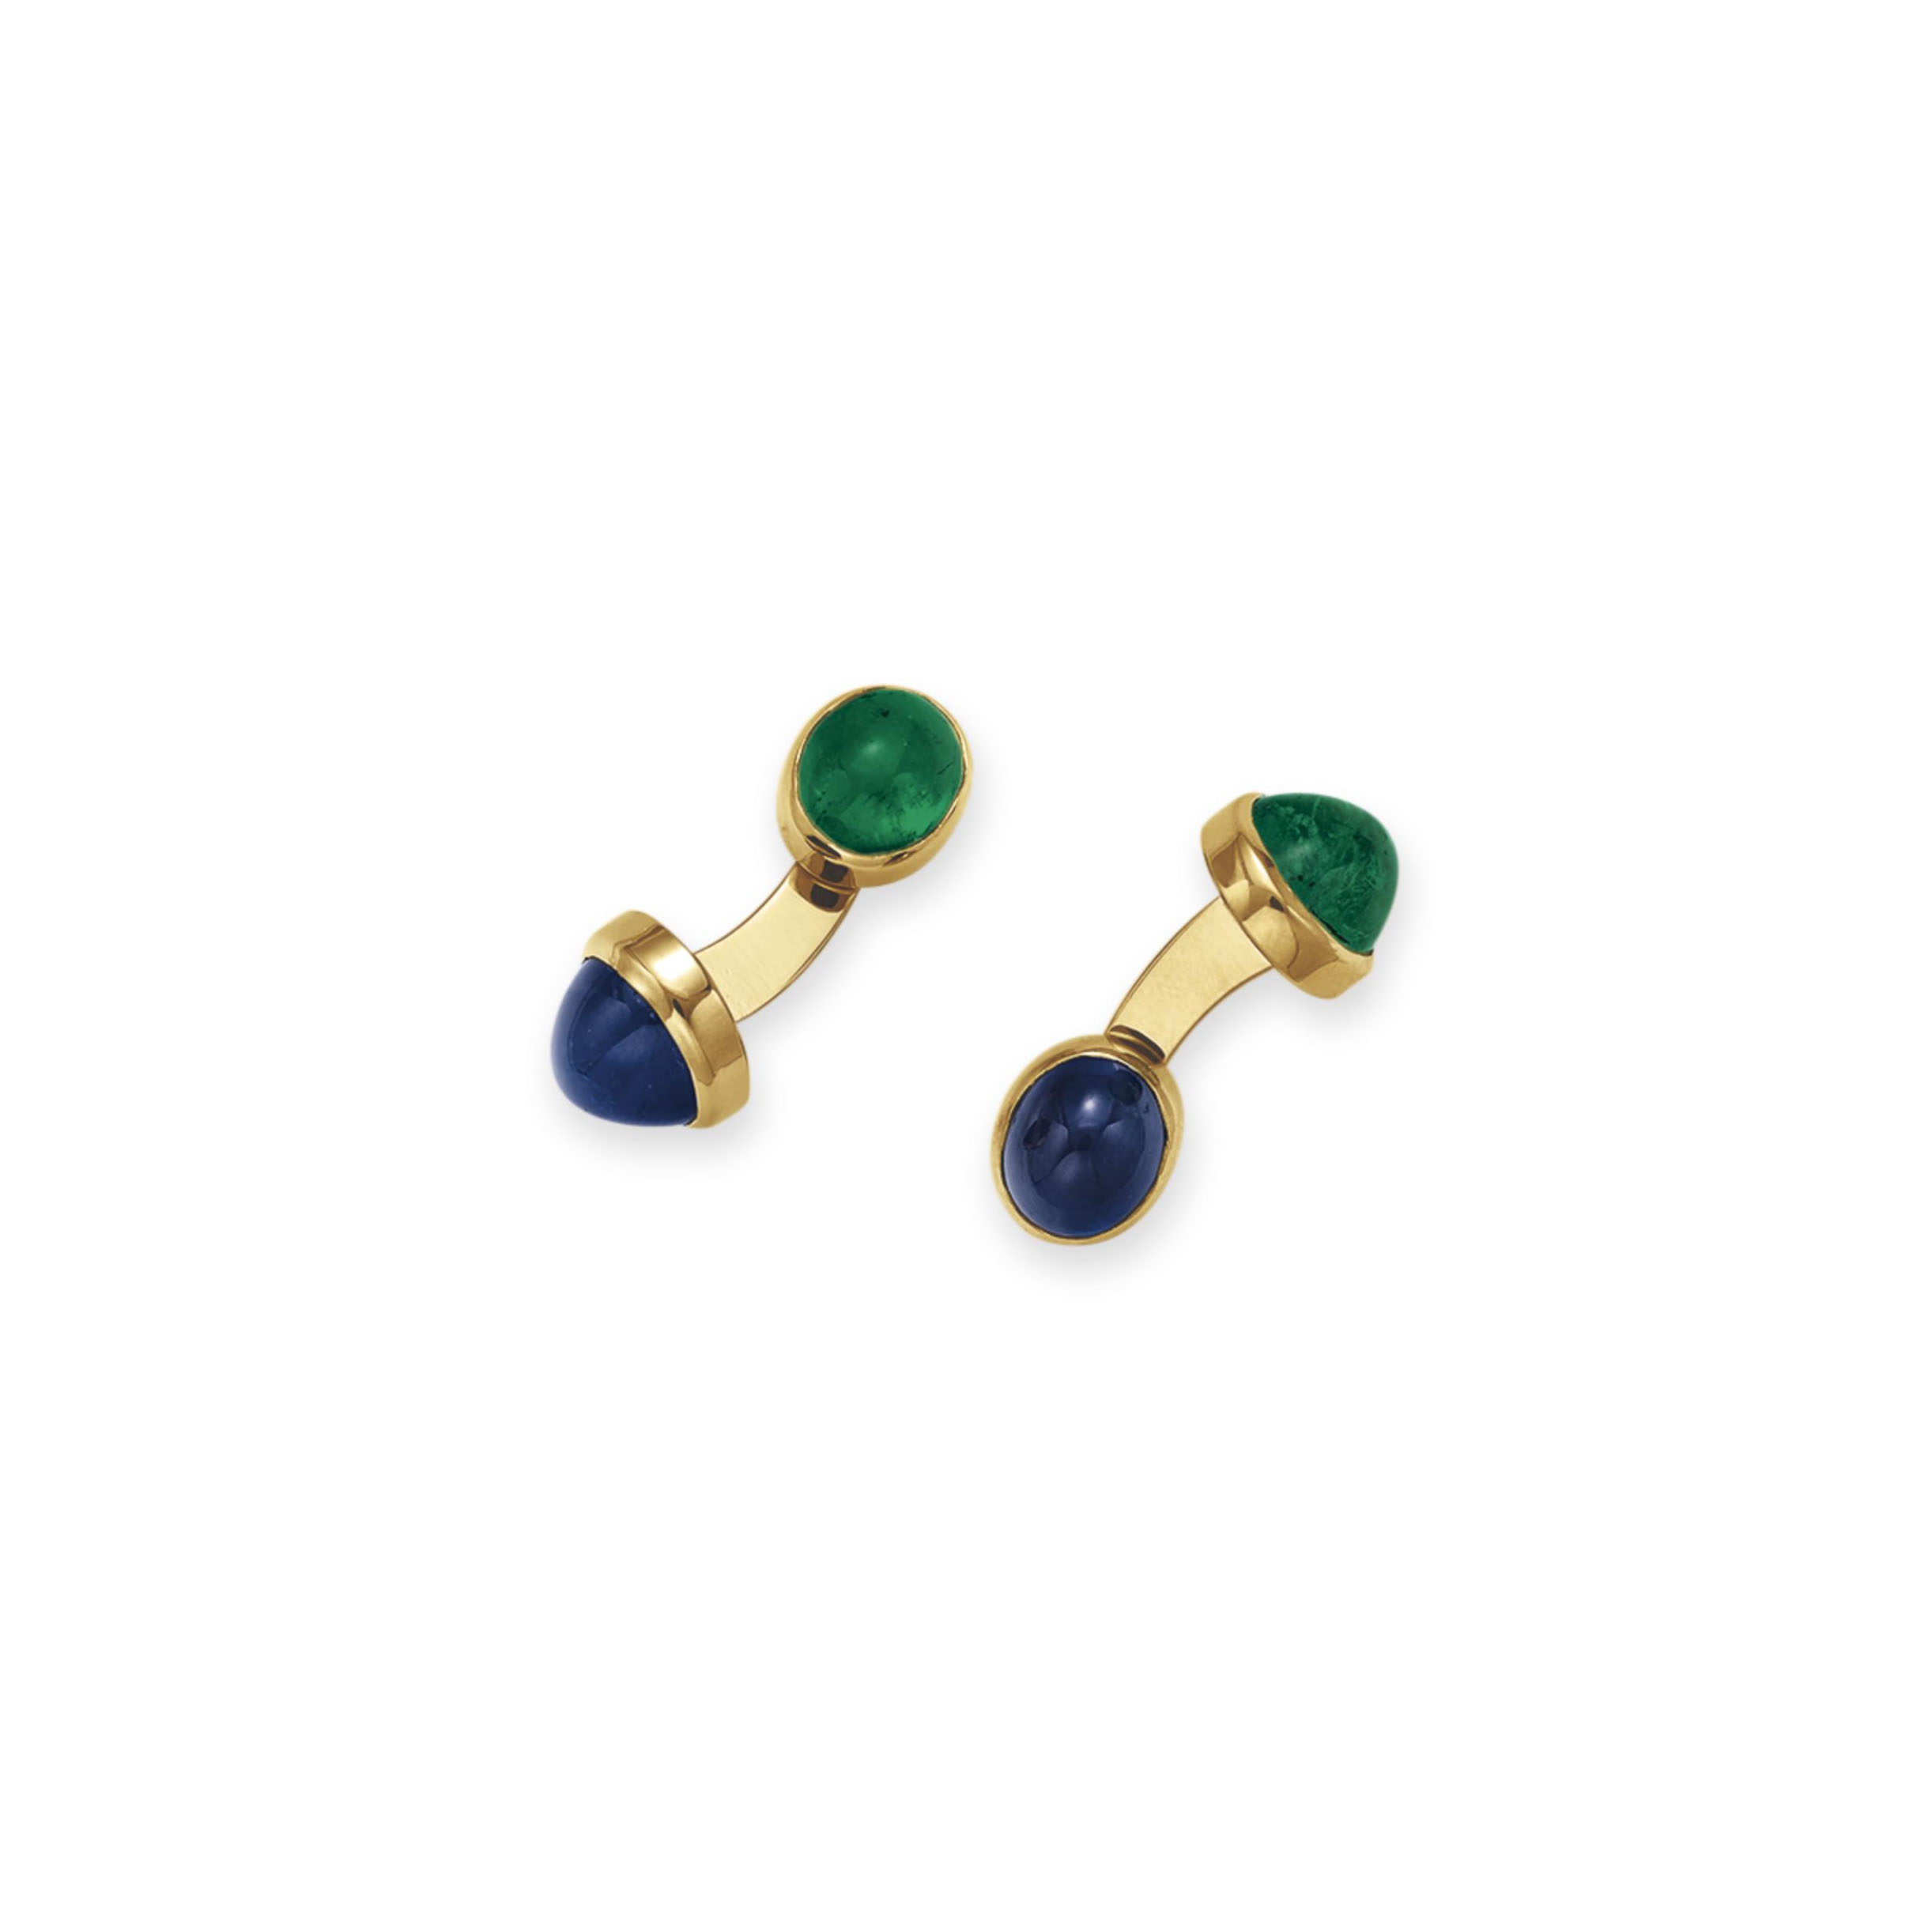 A PAIR OF SAPPHIRE AND EMERALD